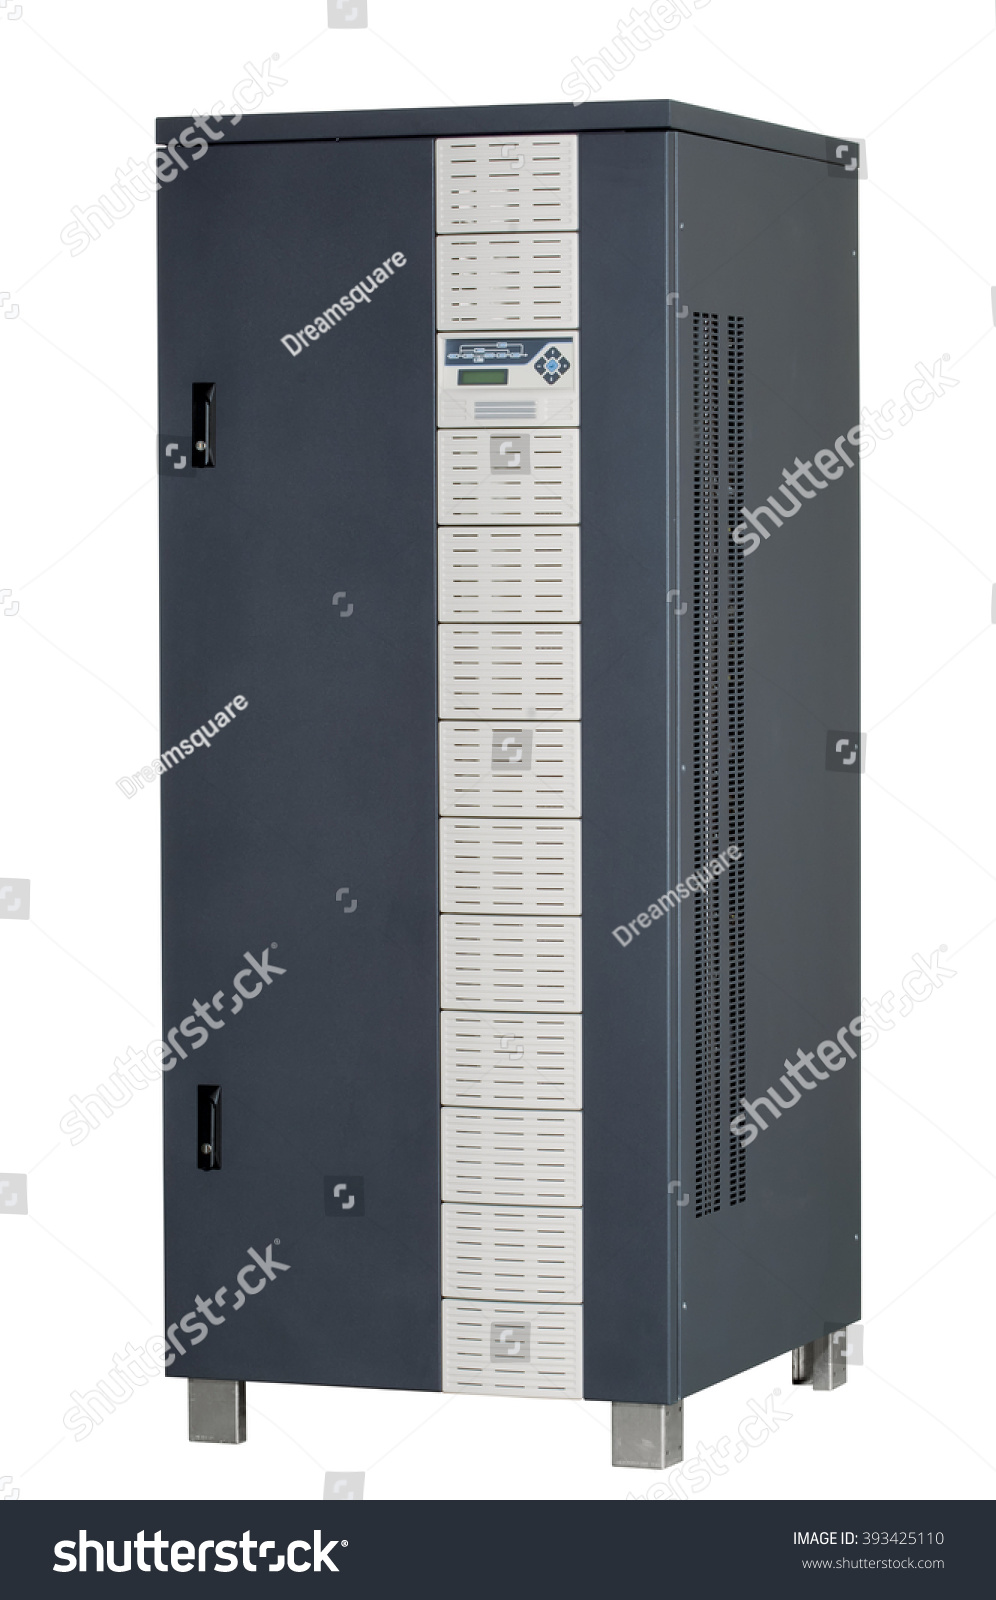 hight resolution of electrical enclosure with its door closed could be electrical circuit breaker fuse box